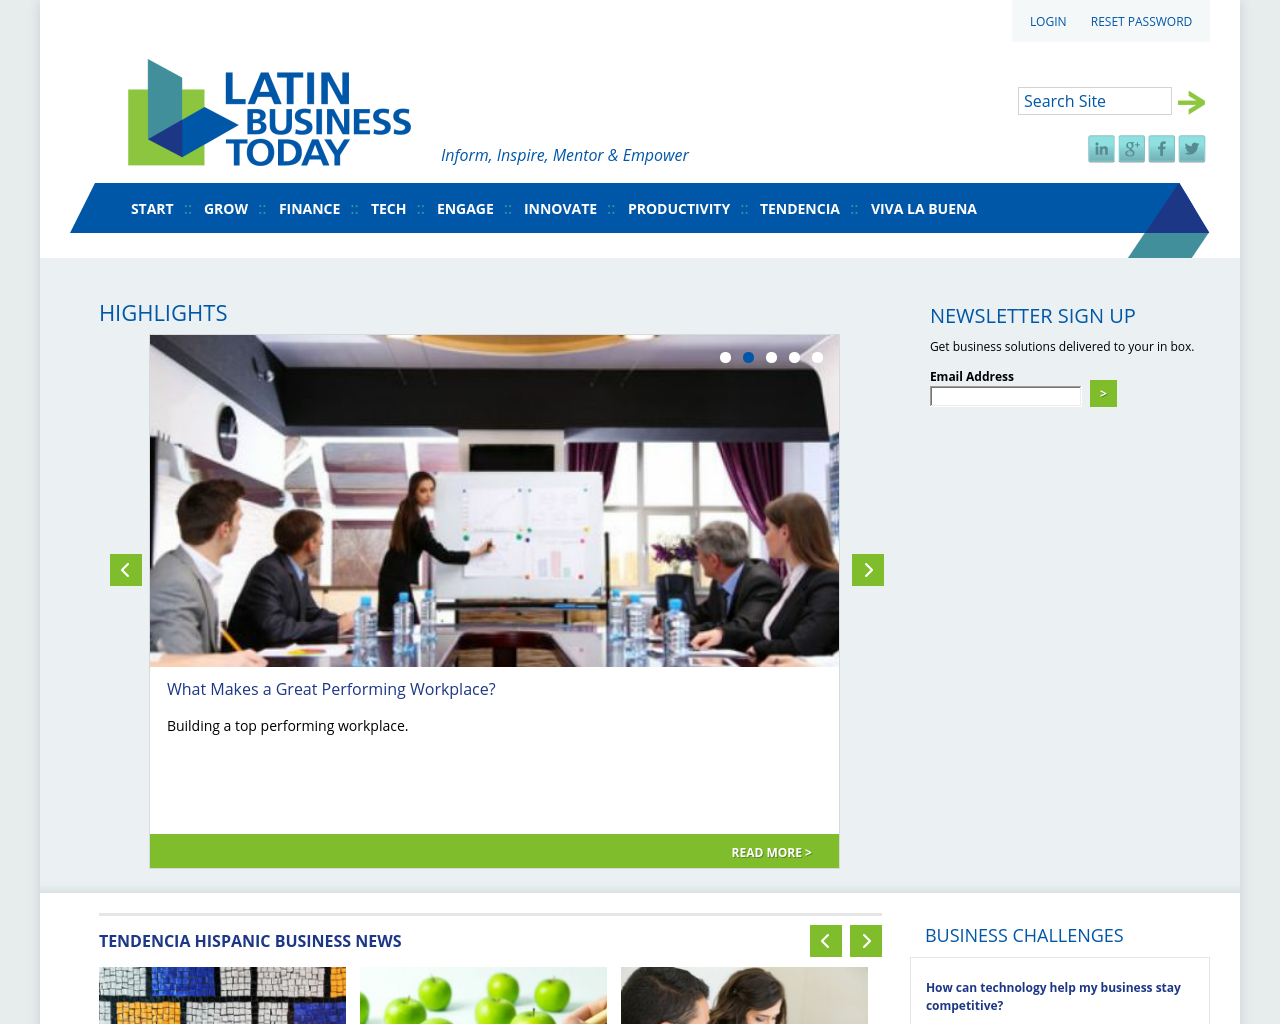 Latin-Business-Today-Advertising-Reviews-Pricing